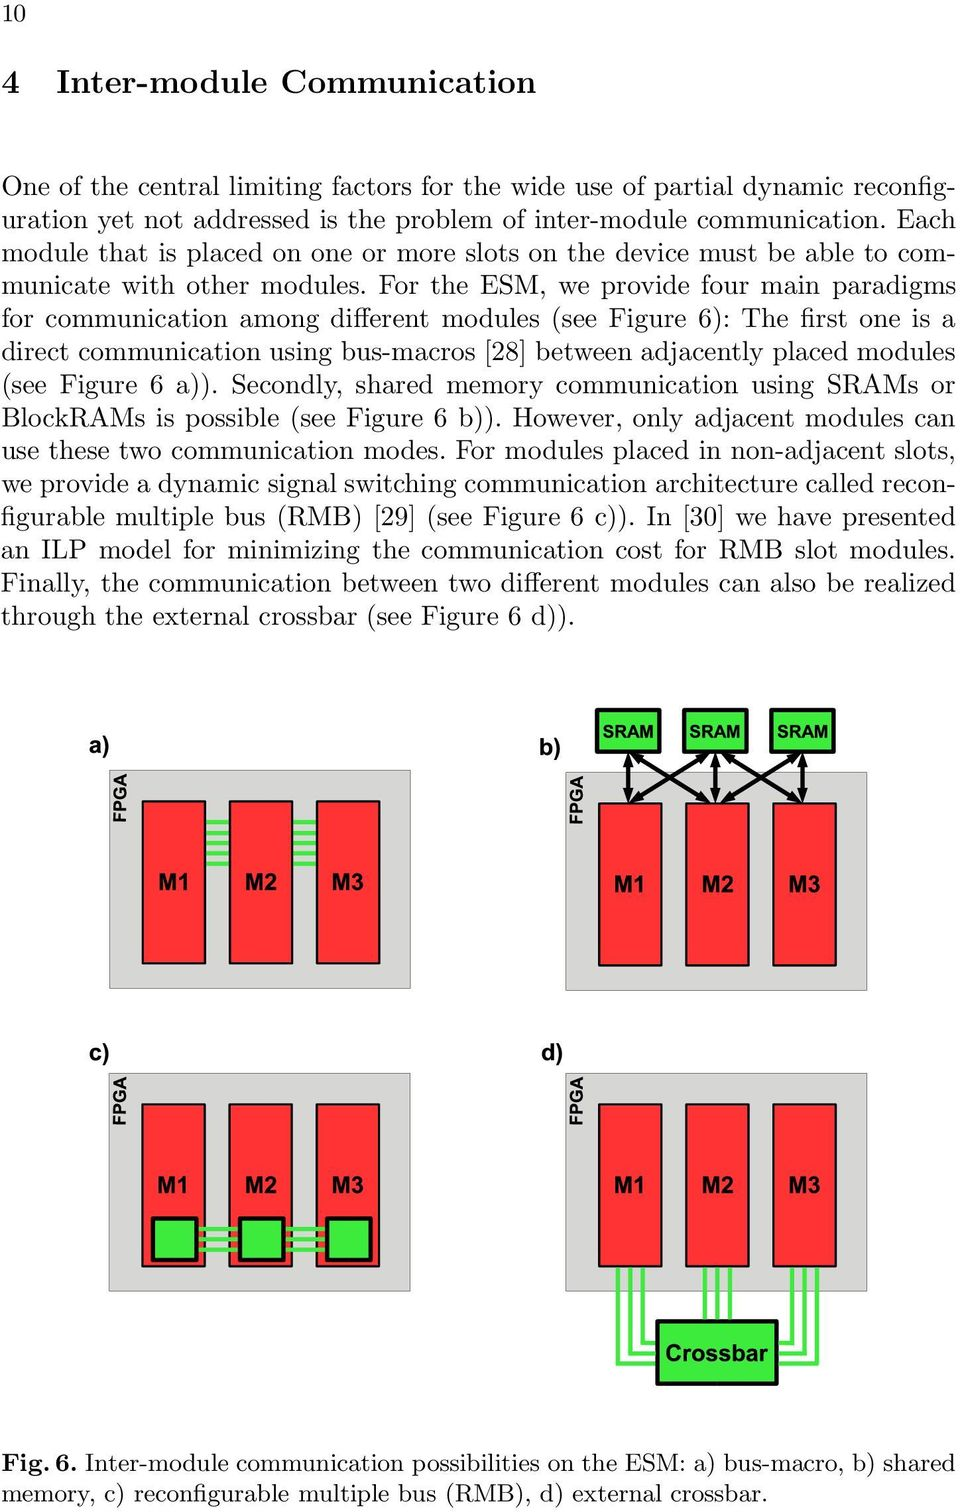 For the ESM, we provide four main paradigms for communication among different modules (see Figure 6): The first one is a direct communication using bus-macros [28] between adjacently placed modules